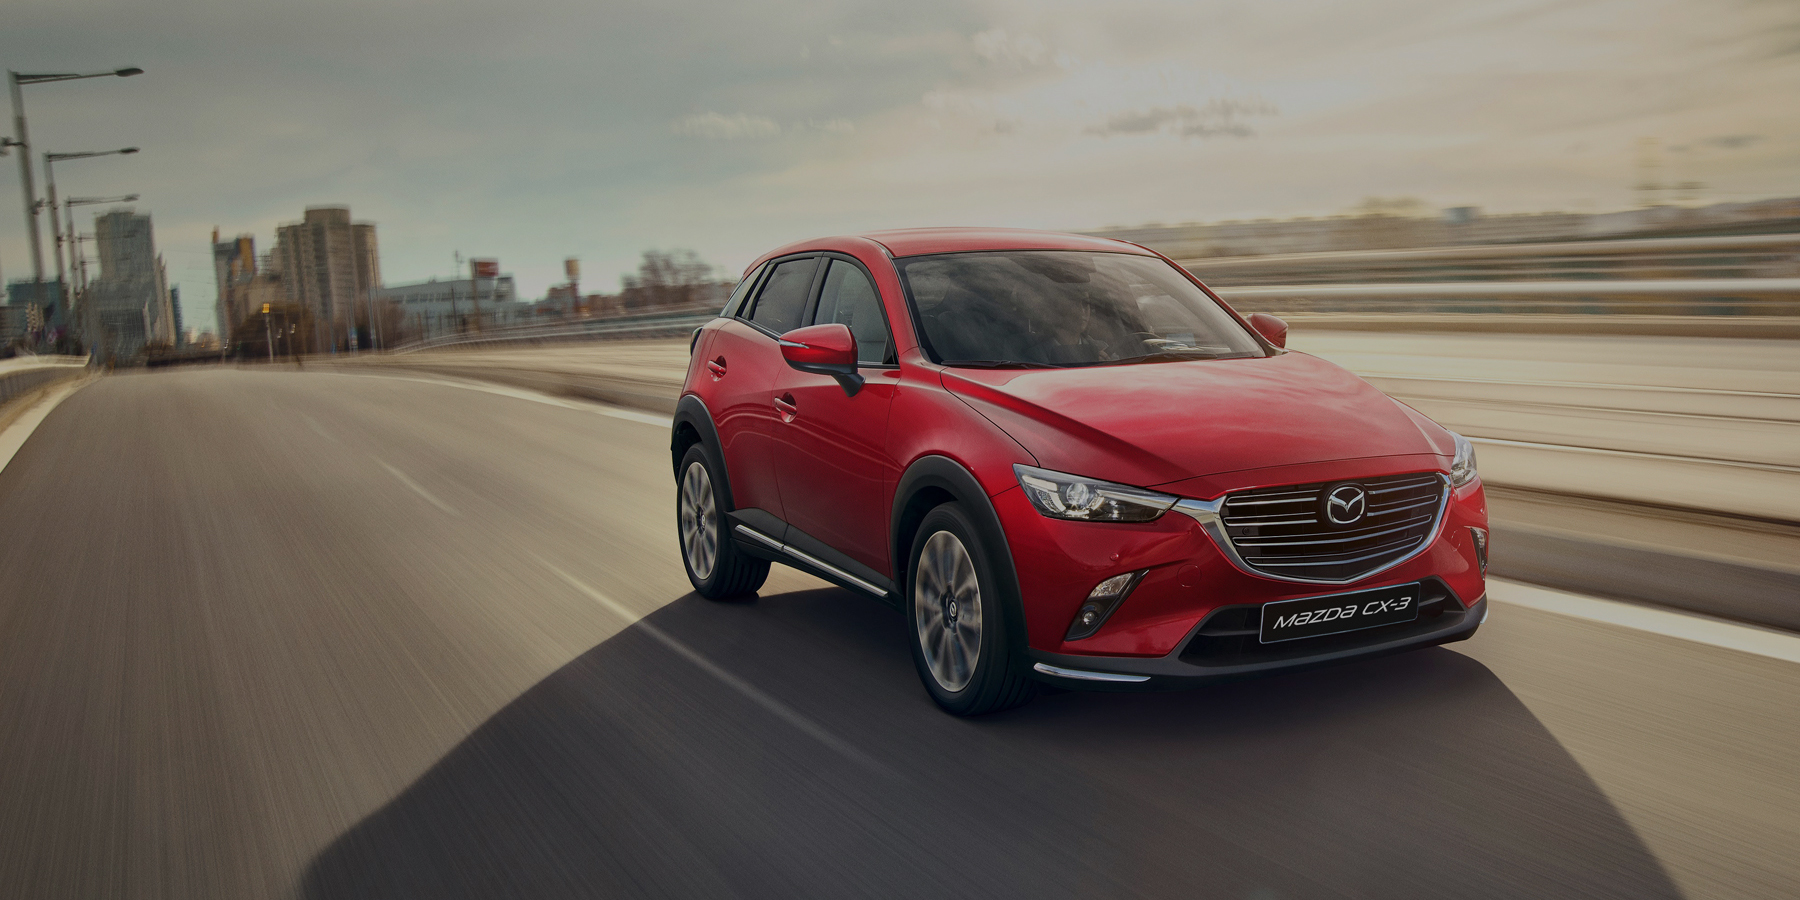 https://peternel.mazda.at/wp-content/uploads/sites/96/2019/05/Cx-3BonusHero_dealerwebsites.jpg